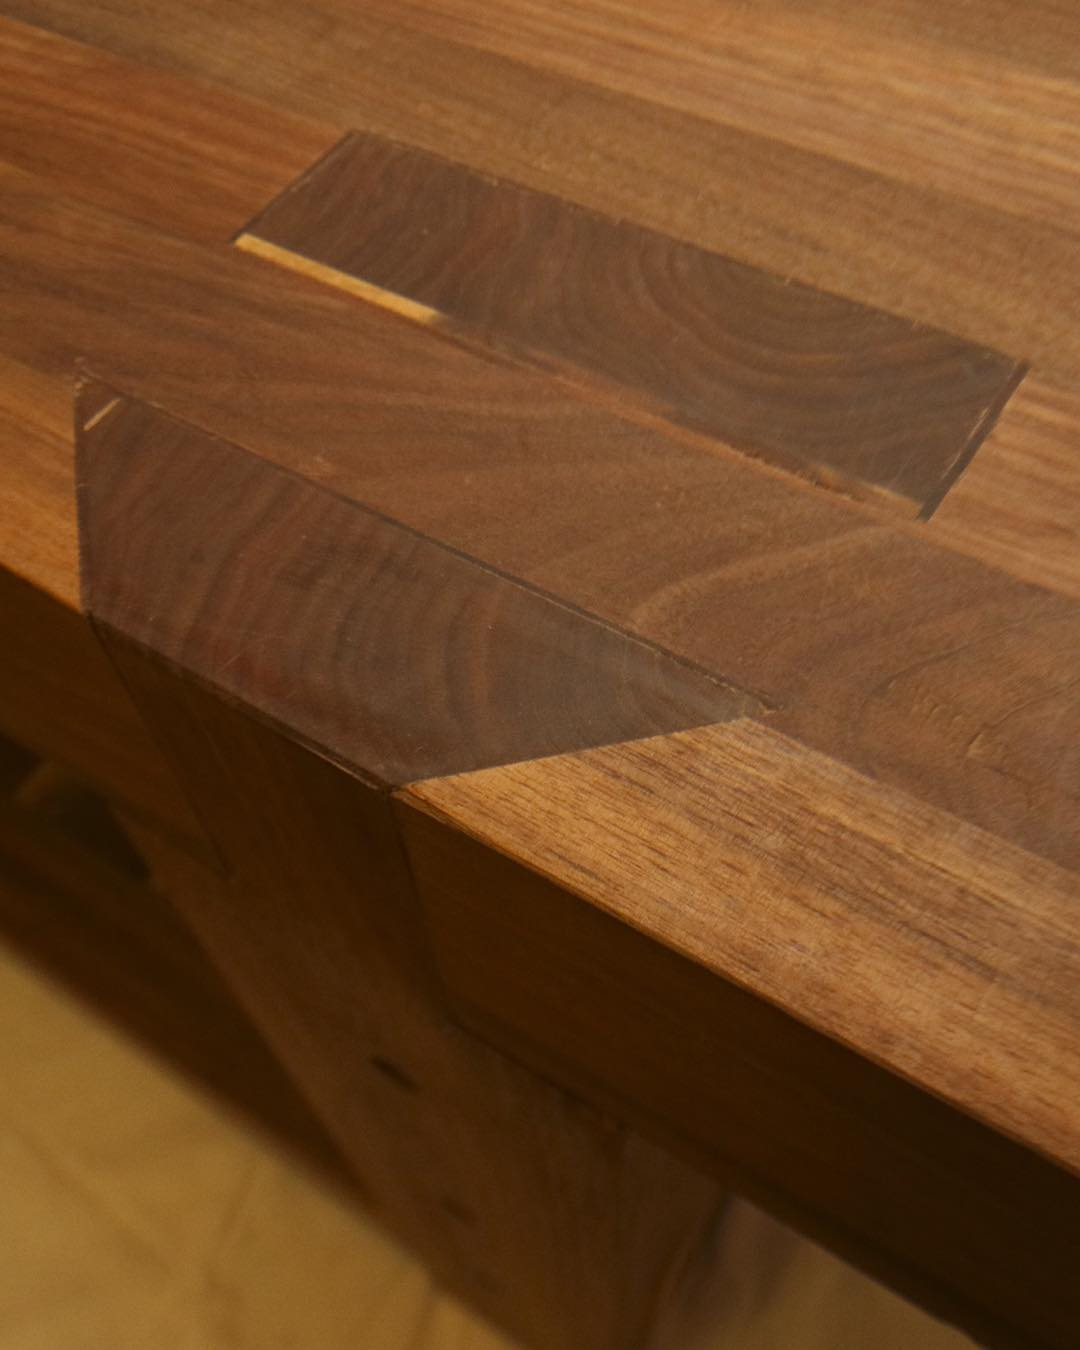 A glamour shot from the walnut Roubo now down with @cupandchisel in Houston. That was a nice bench!  #madeinusa #madeinmichigan #Benchcrafted #woodshop #workshop  #woodwork  #handmade #walnut #workbench #roubo #tenon #dovetail  http://ift.tt/1PxEwVw